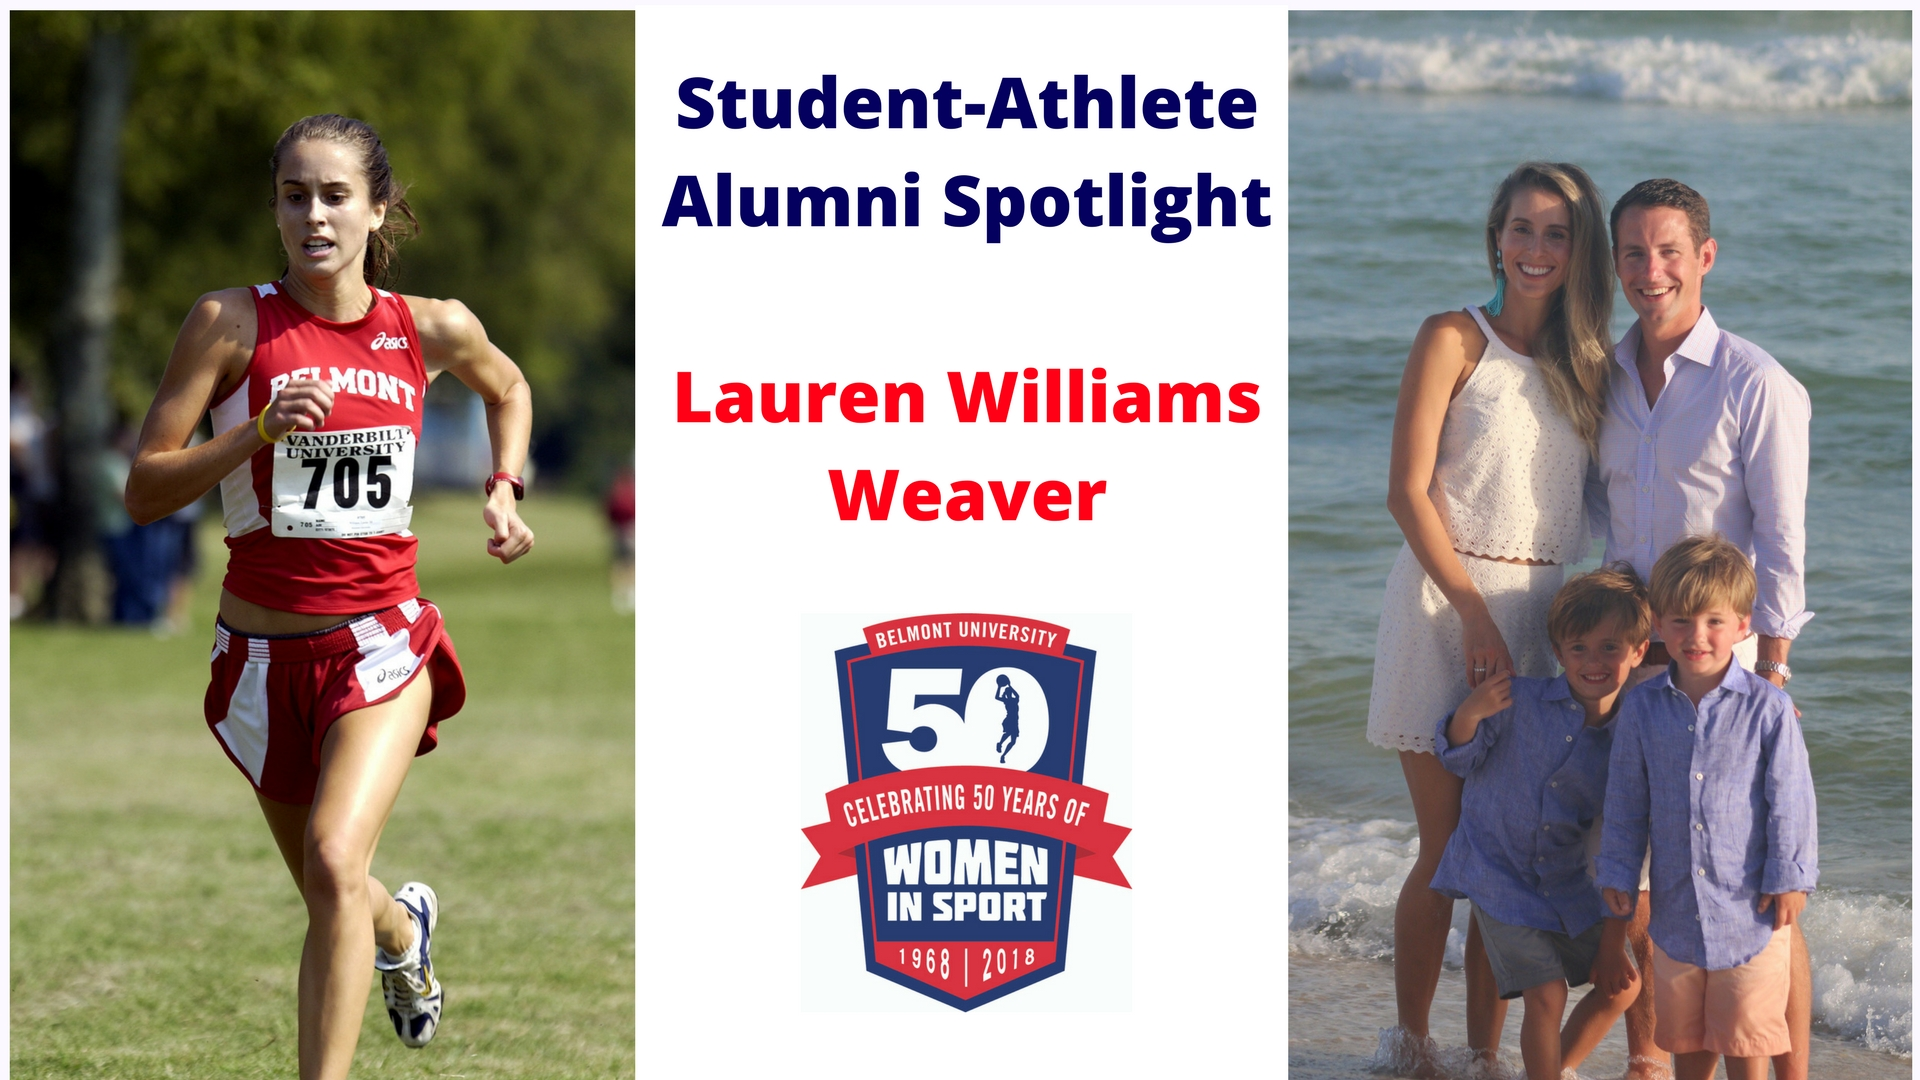 Student-Athlete Alumni Spotlight -- Lauren Williams Weaver